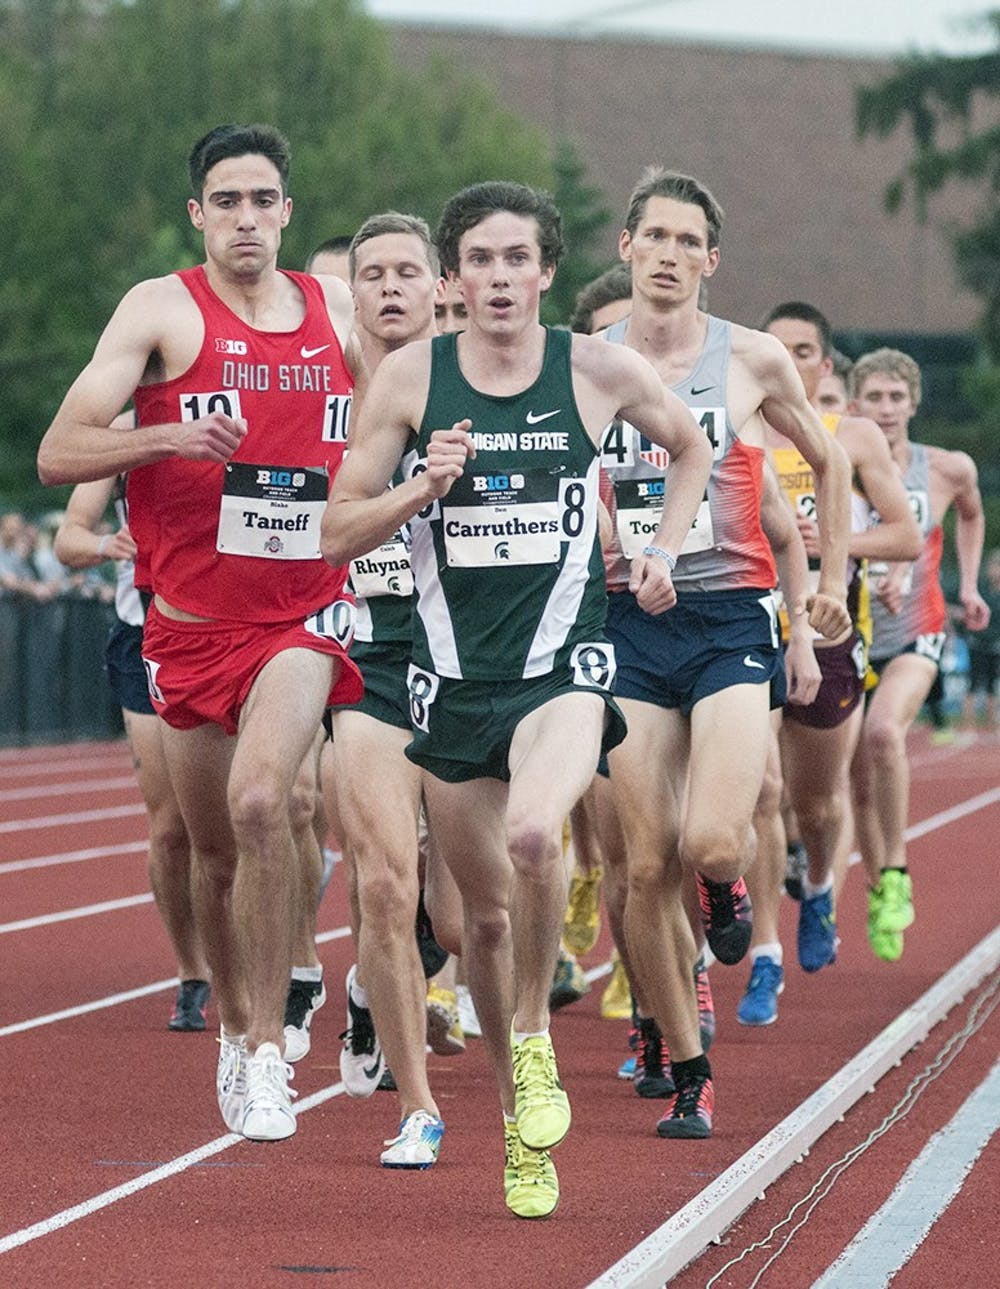 <p>Senior Ben Carruthers leads the pack early in the 10,000 meter race during the Big Ten Conference Track and Field Championships May 15th, 2015 at Ralph Young Field. Ryan Squanda/The State News</p>